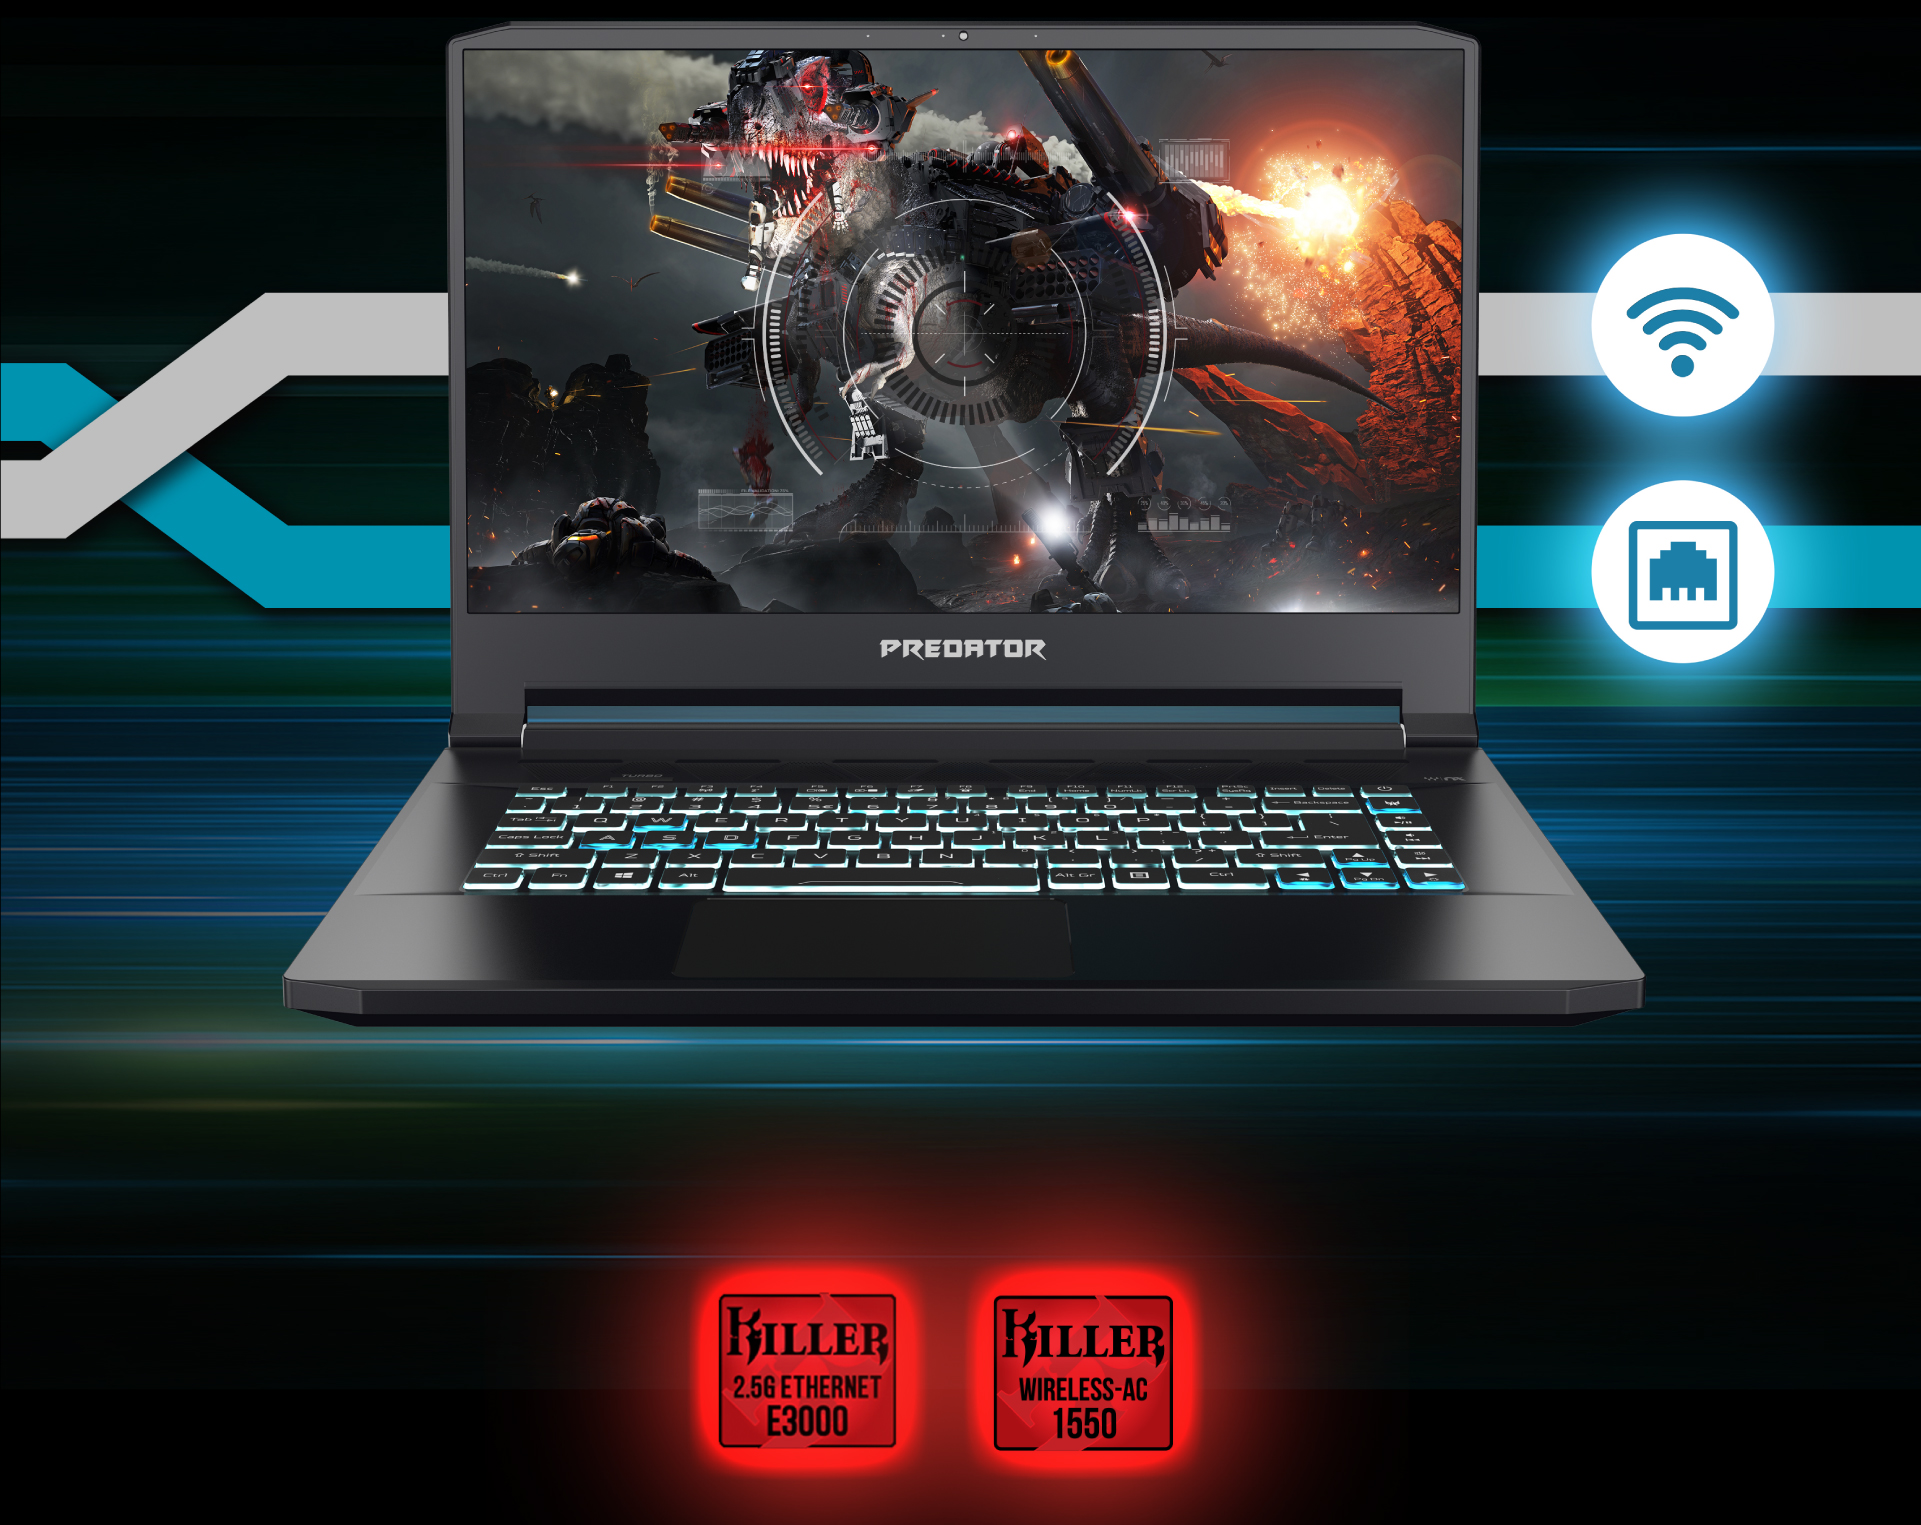 Predator Triton 500 - LESS LATENCY, MORE VICTORY - Large